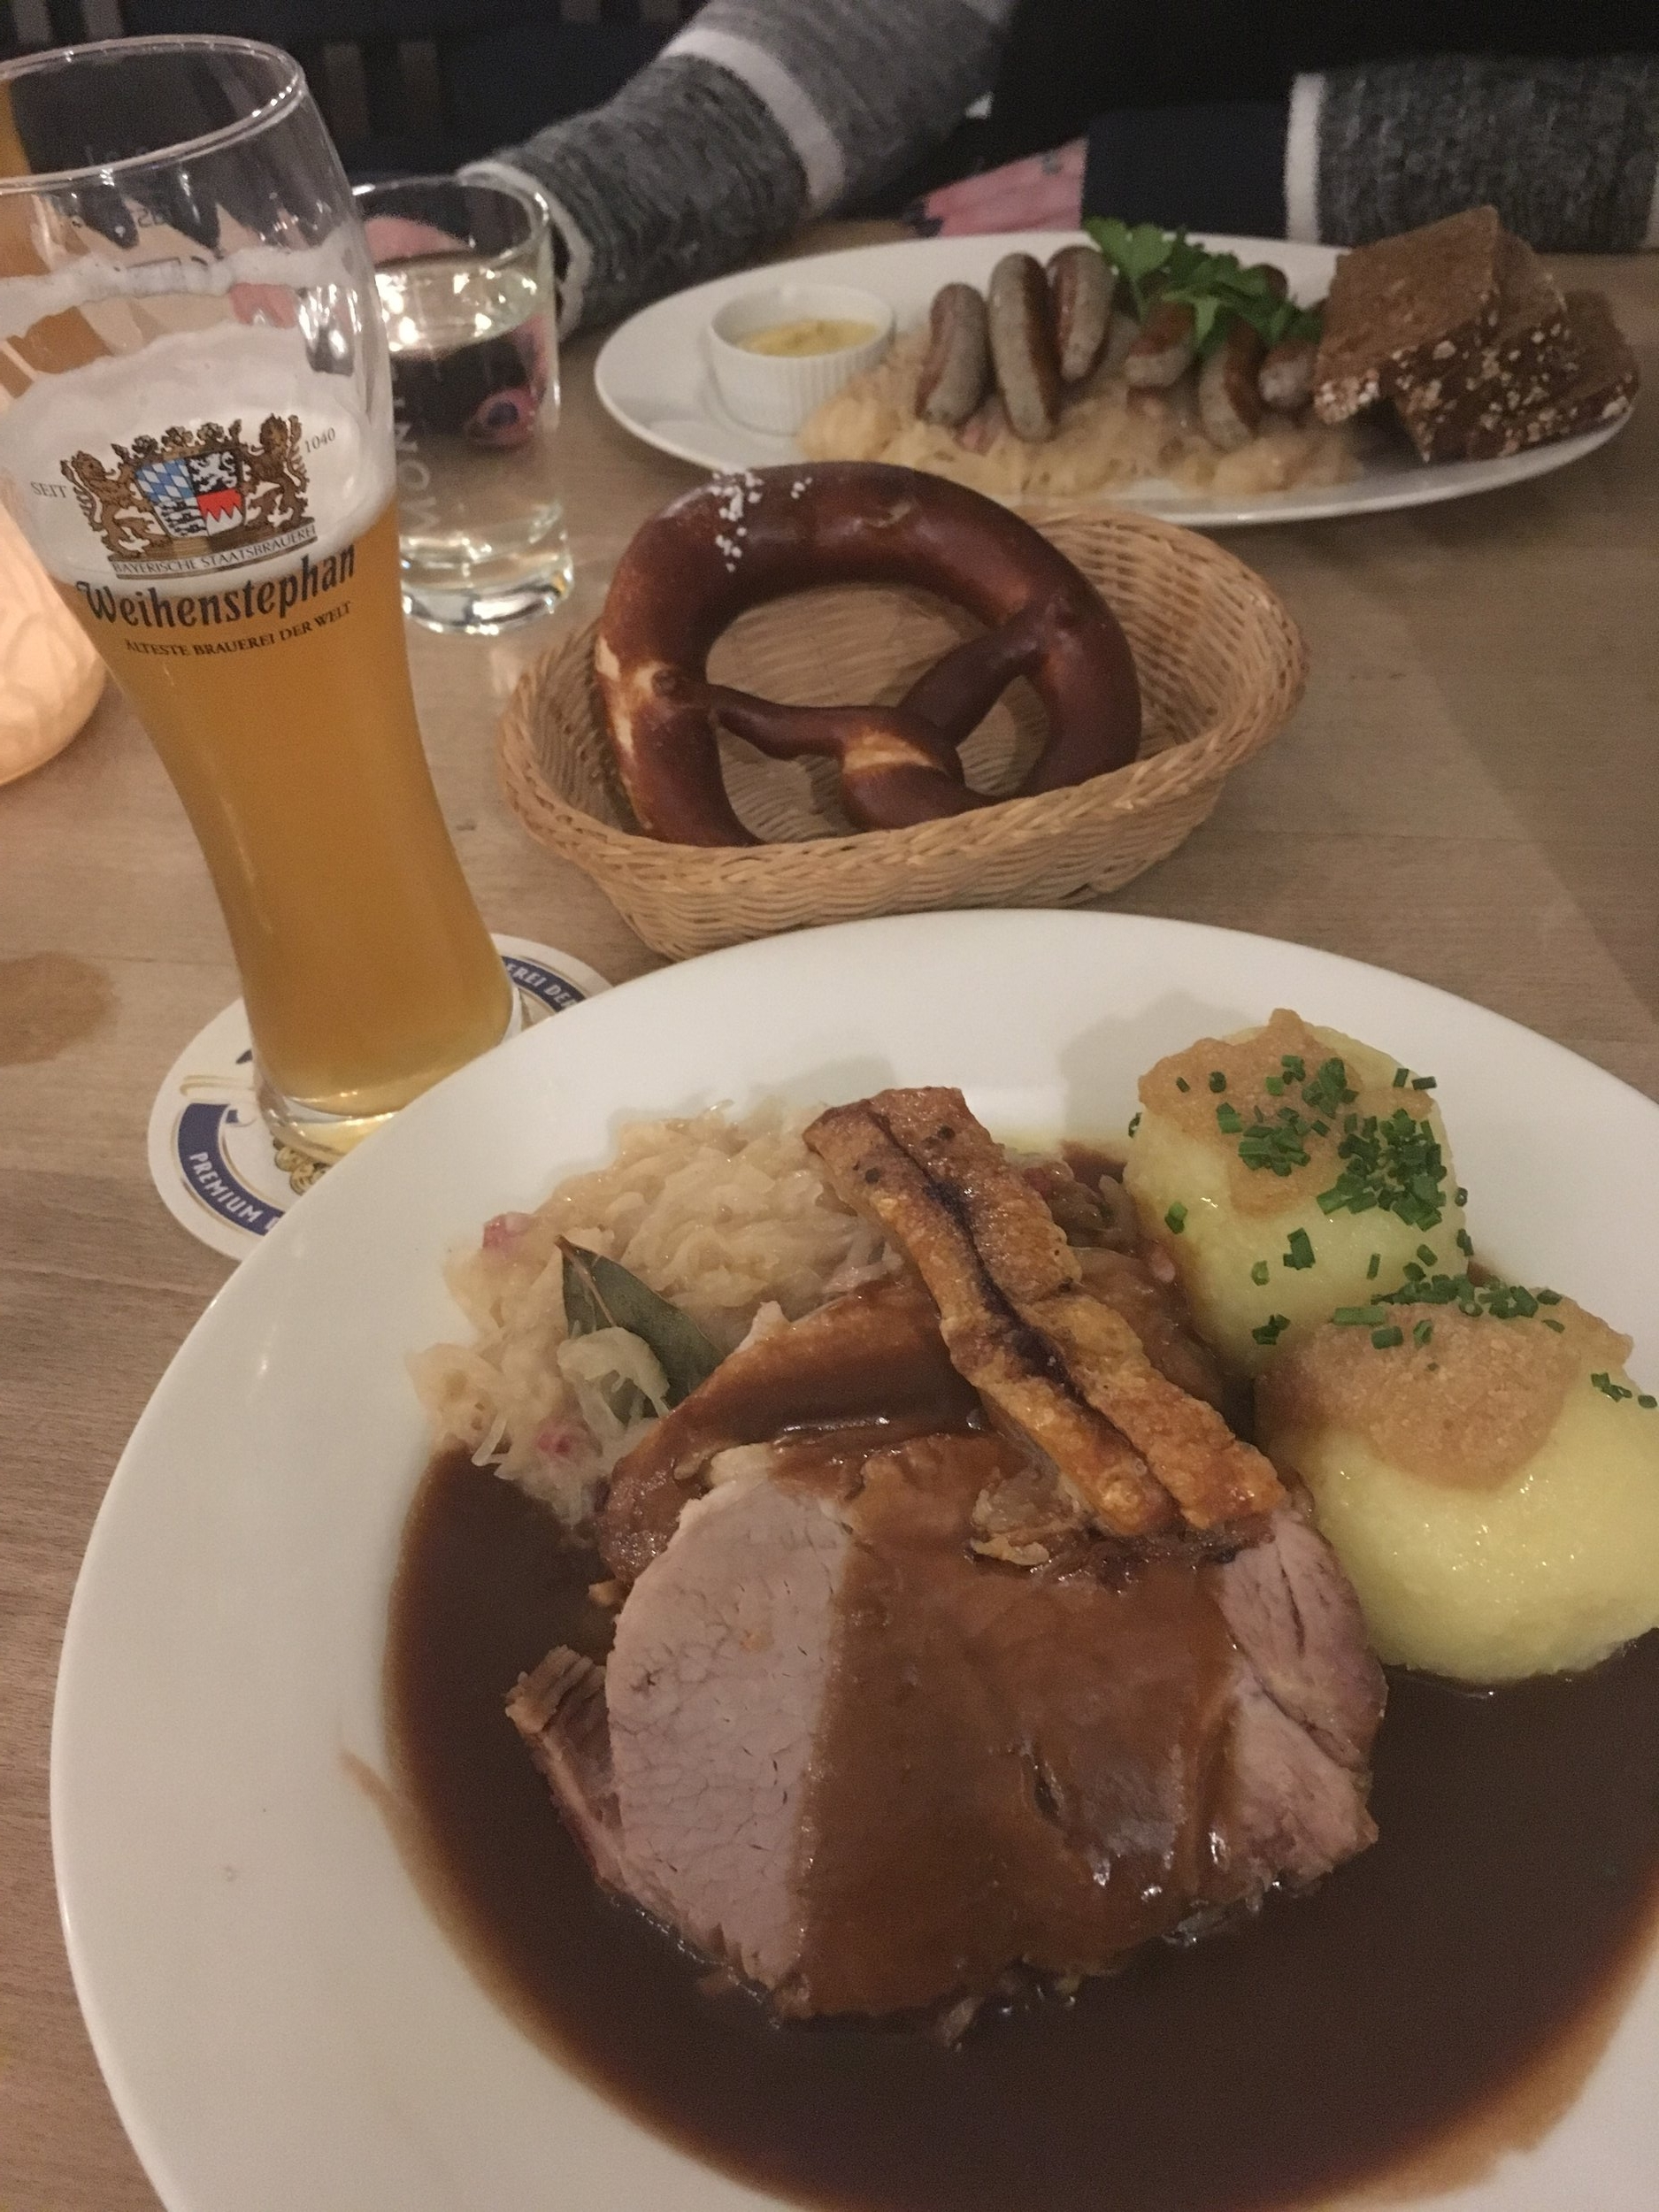 Weihenstephaner Berlin